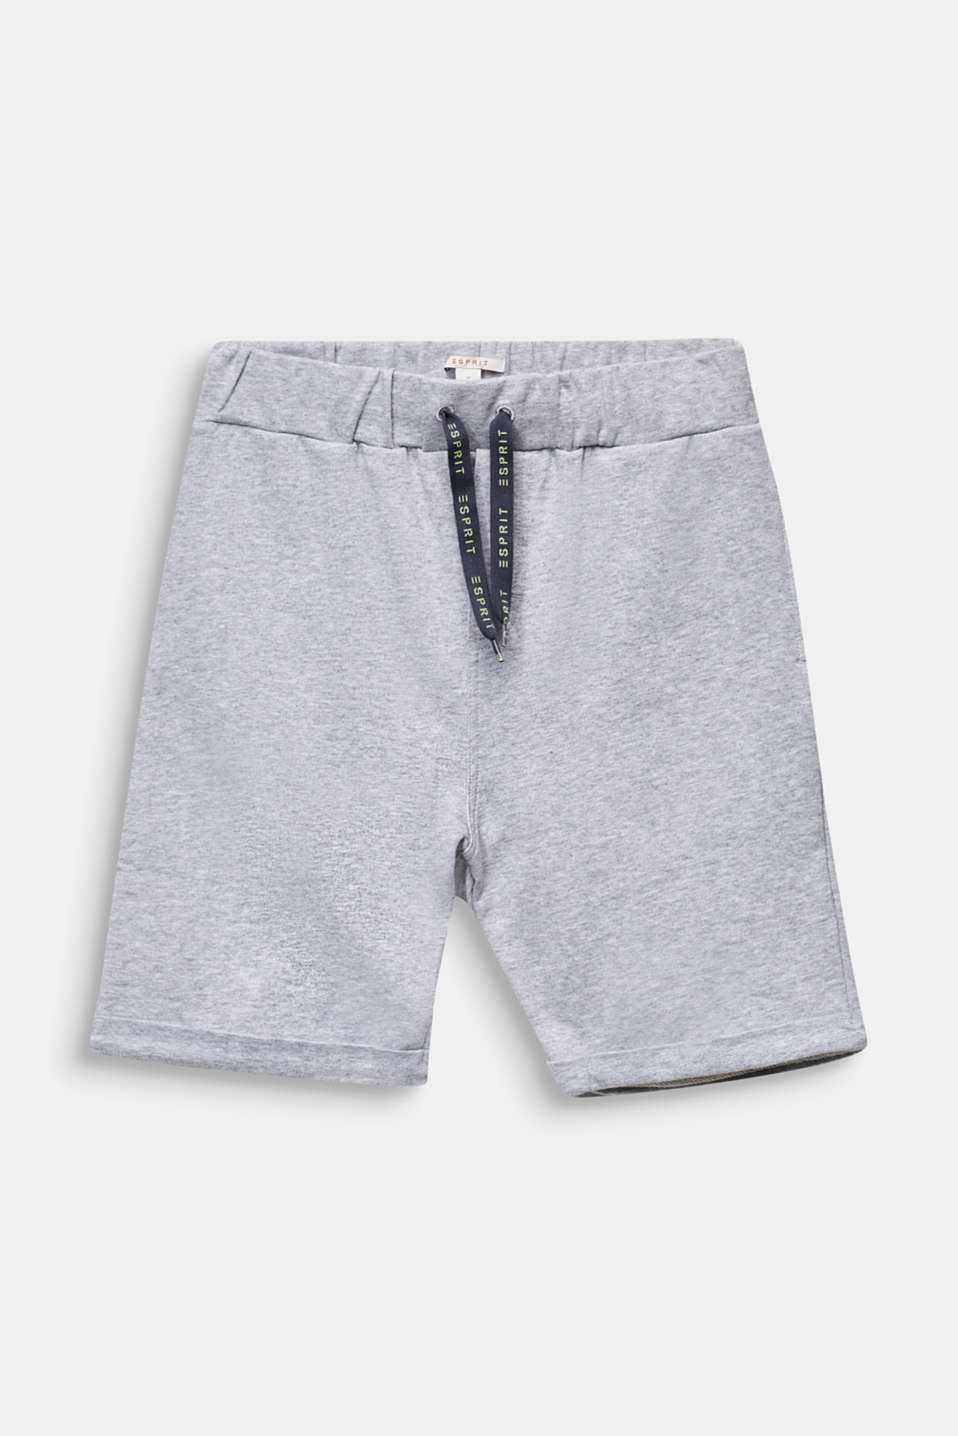 Esprit - Sweat-Shorts aus 100% Baumwolle